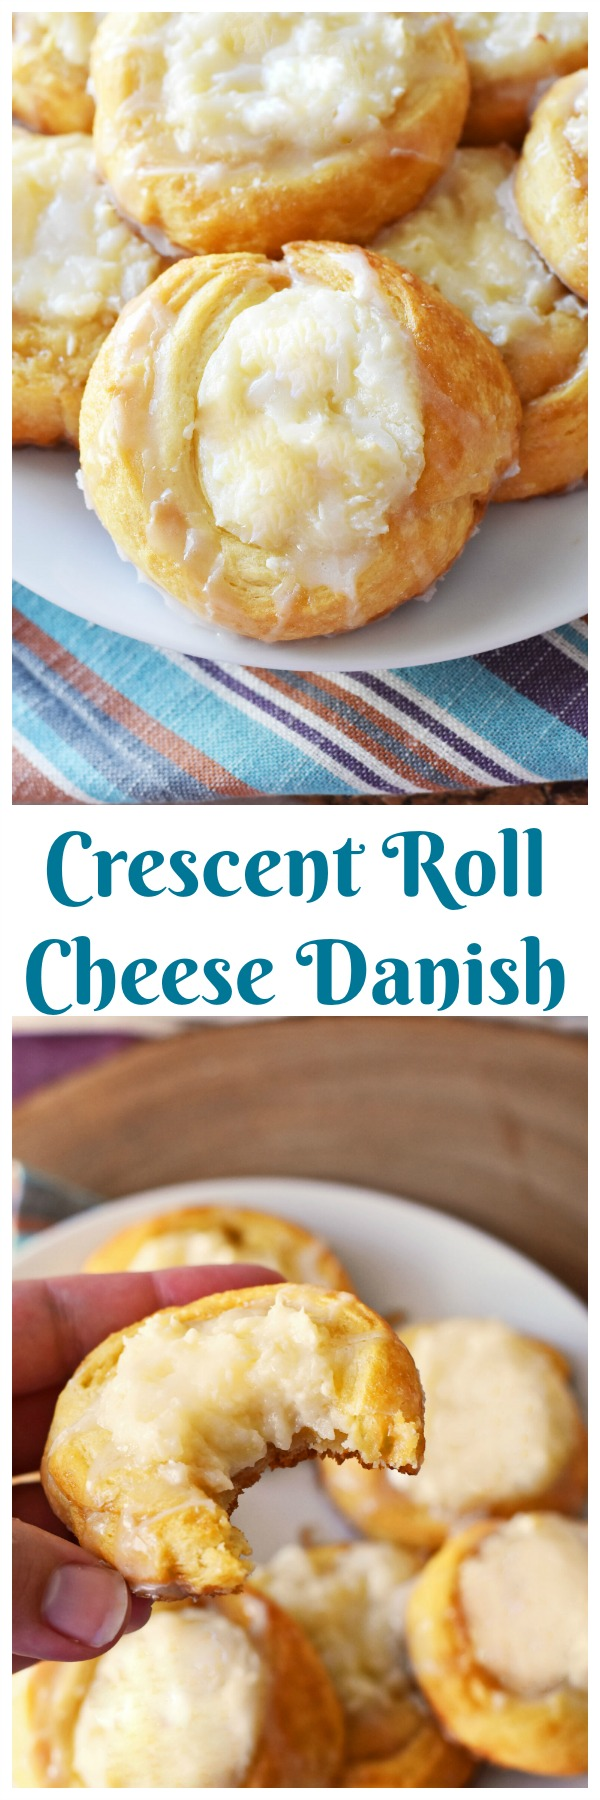 Crescent-Roll-cheese-danish-hero